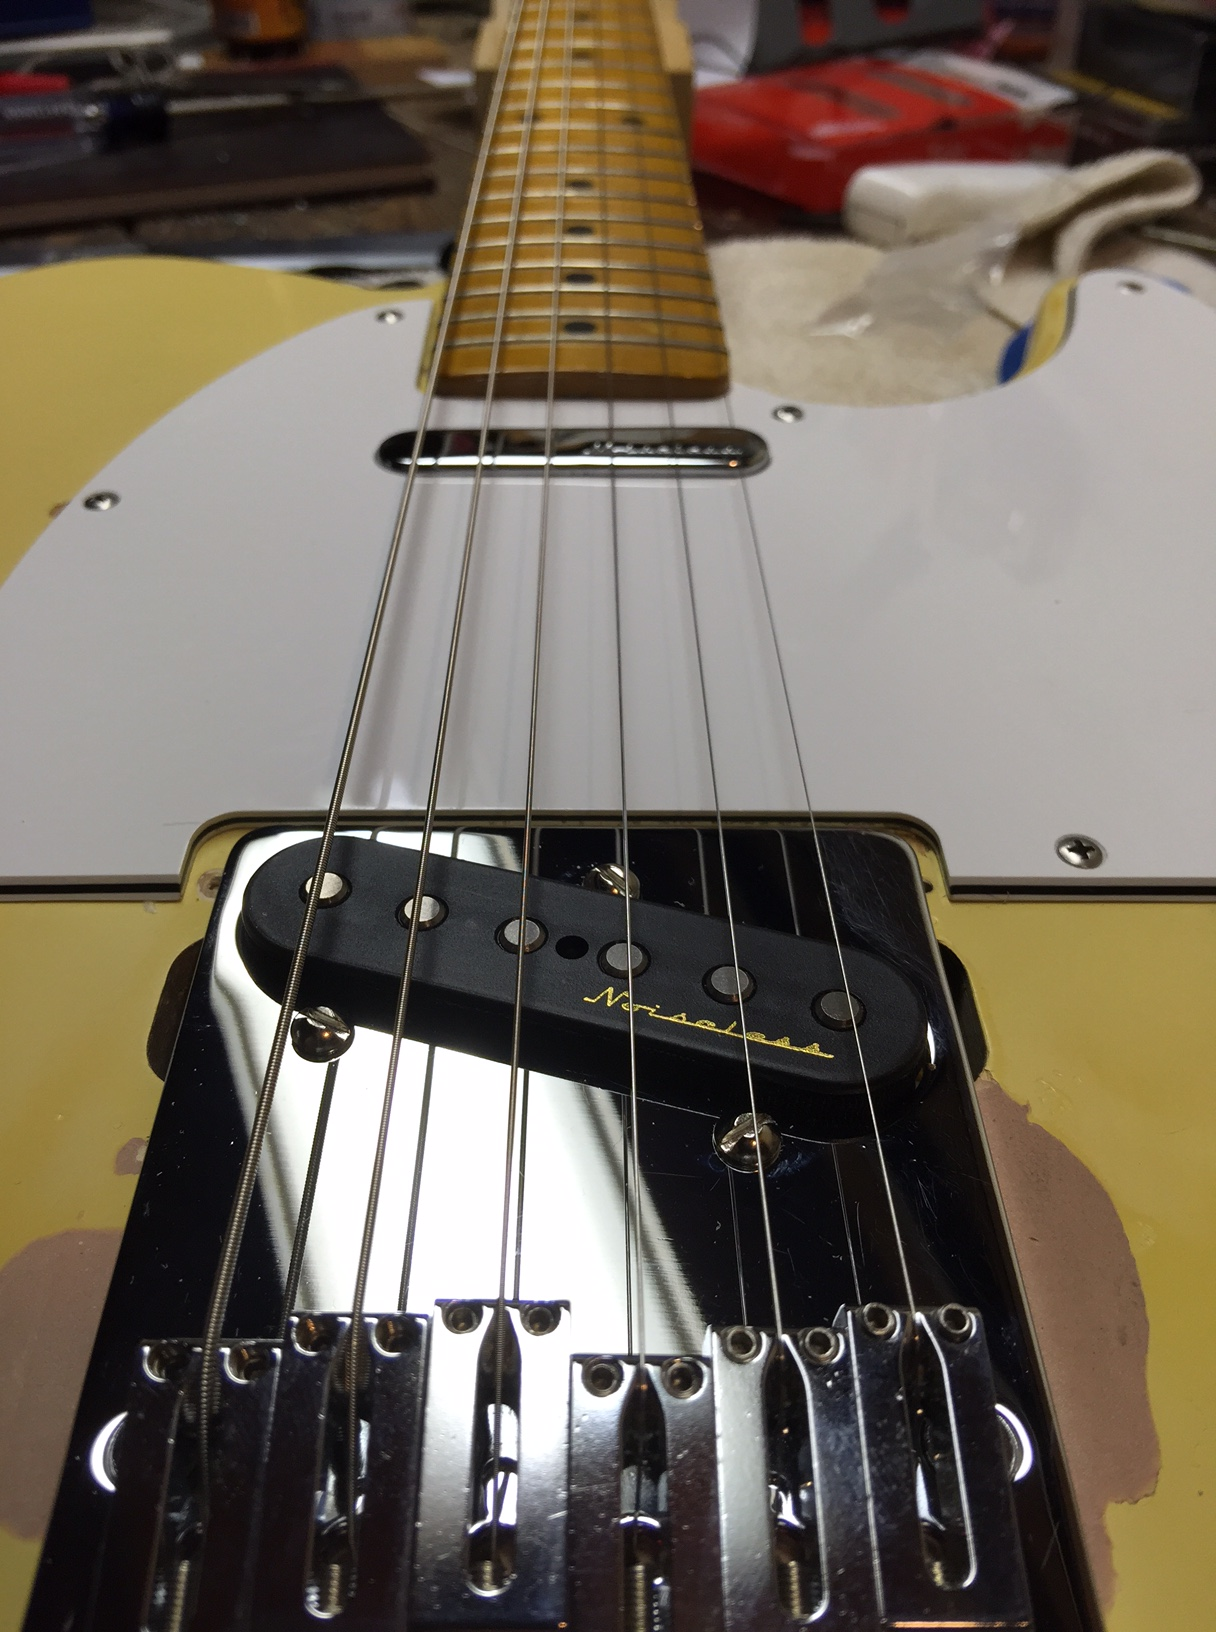 With Hot Noiseless Pickus Nashville Wiring Before Removal